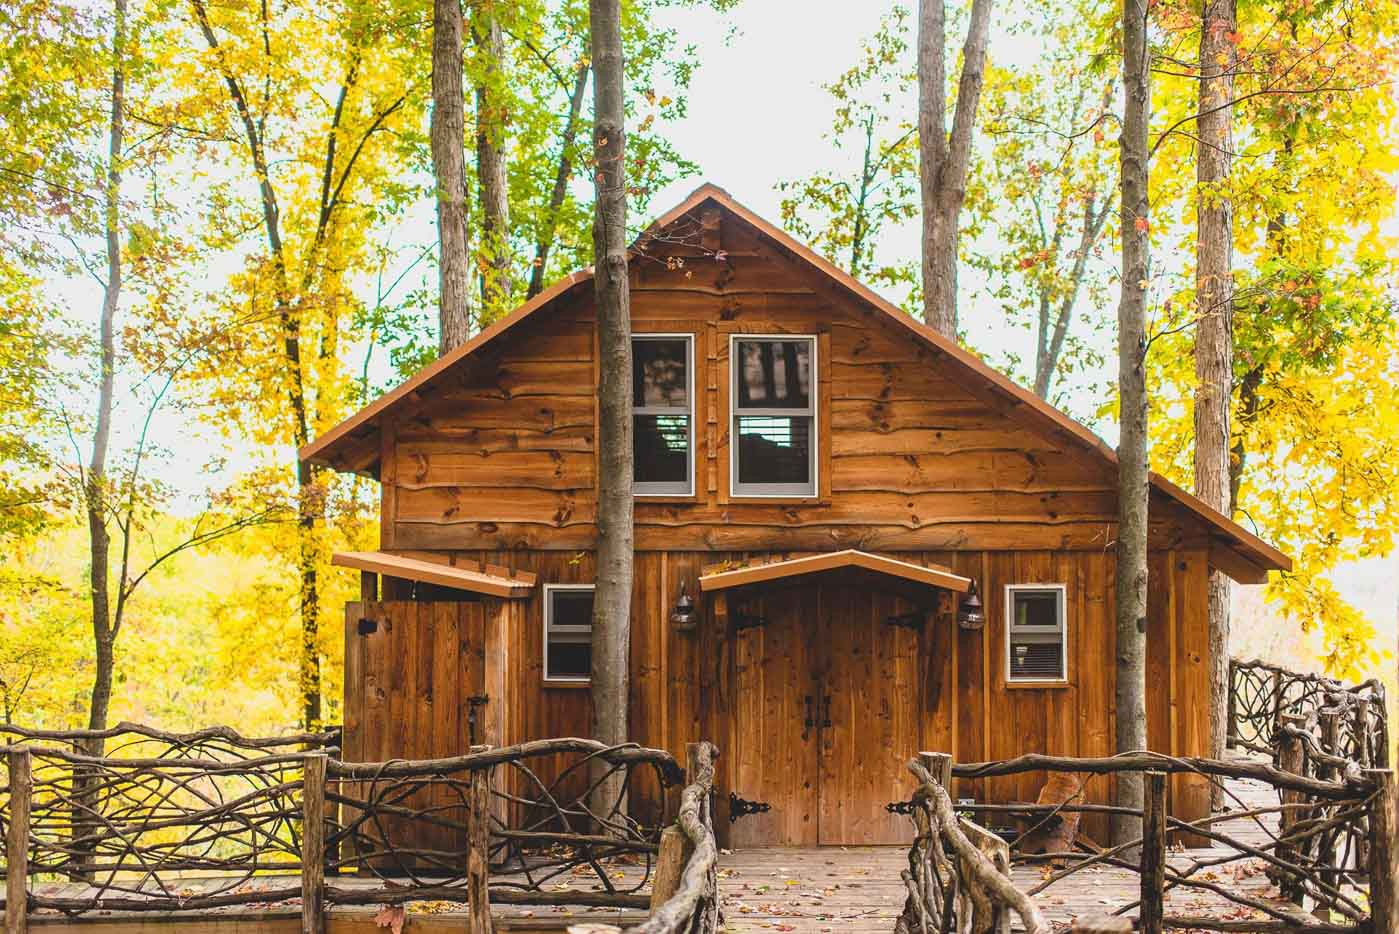 rental ca mountains rentals carolina blue ridge in to tahoe north cheap lake own michigan cabins best places rent portable ohio cabin s upper